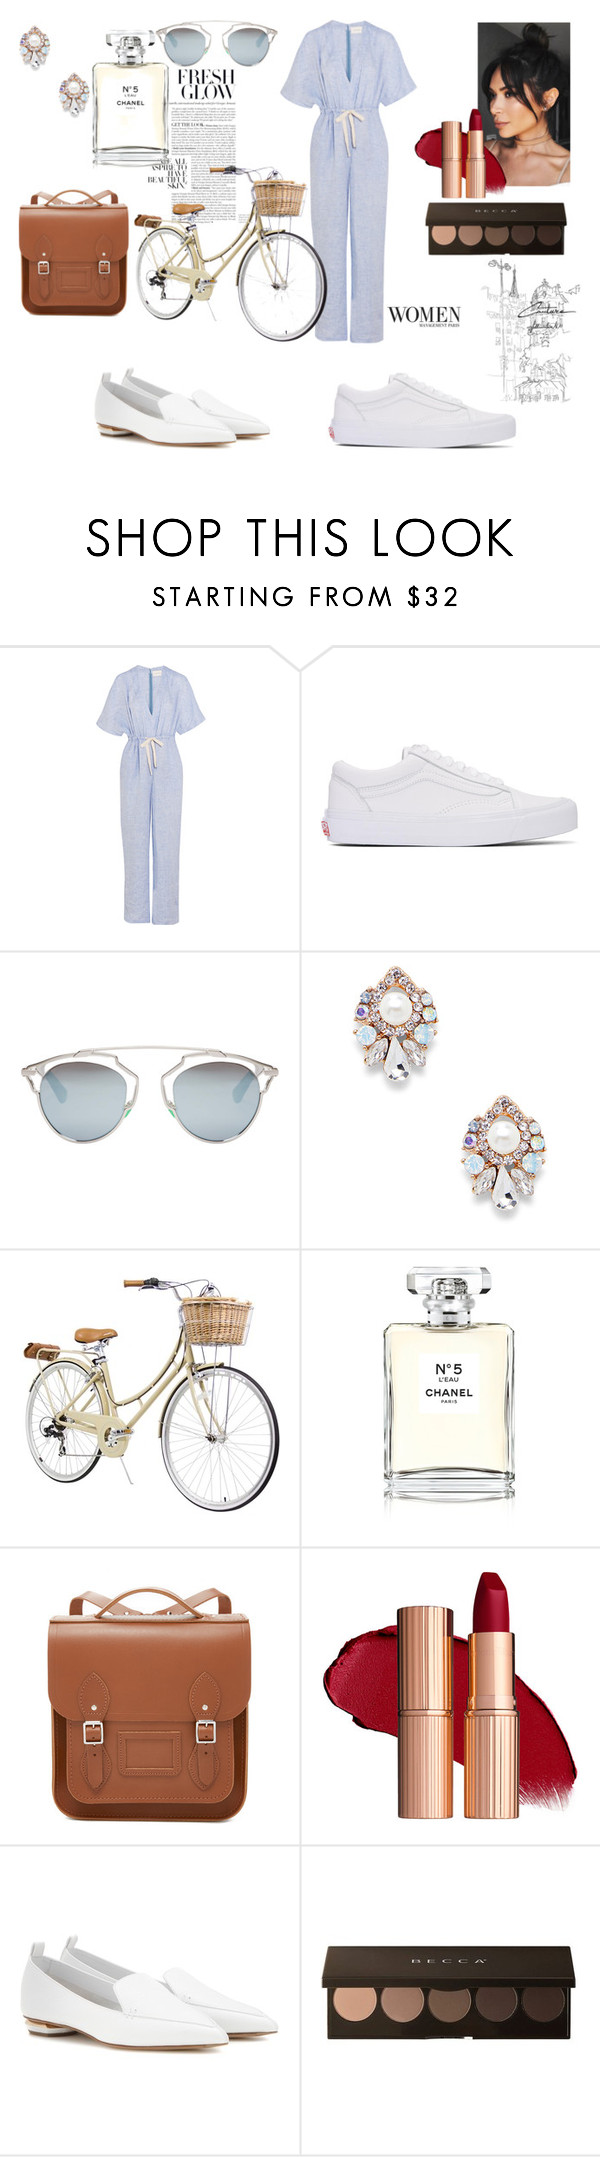 """Bounjour Paris"" by tonileemanuel-1 ❤ liked on Polyvore featuring Solid & Striped, Vans, Christian Dior, Sole Society, Chanel, The Cambridge Satchel Company and Nicholas Kirkwood"